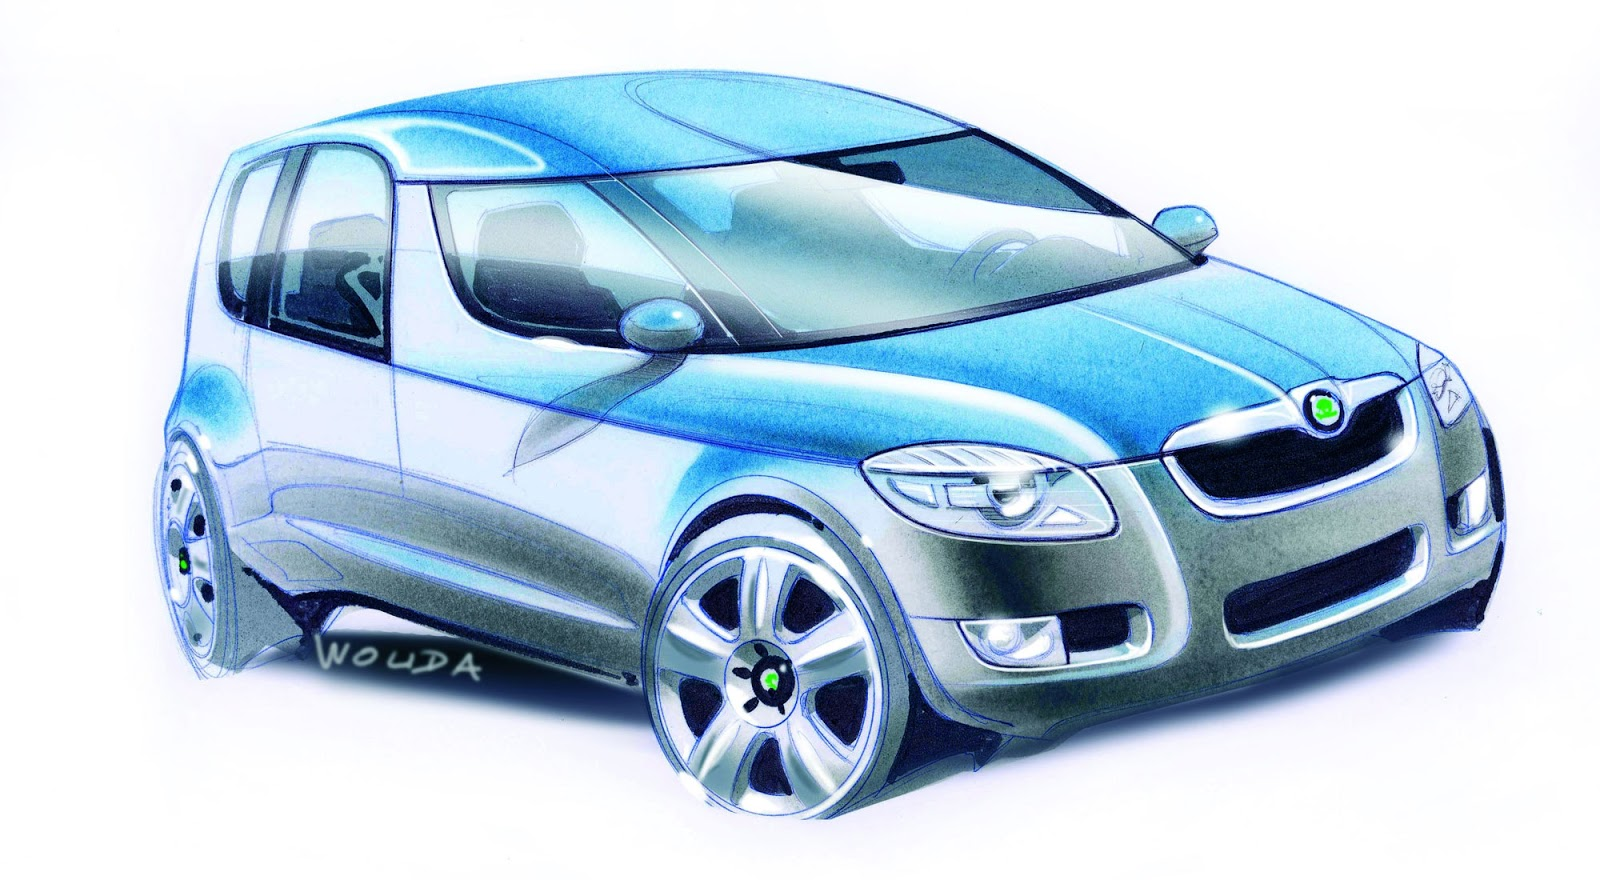 Skoda Roomster sketch by Peter Wouda - final theme, front quarter view